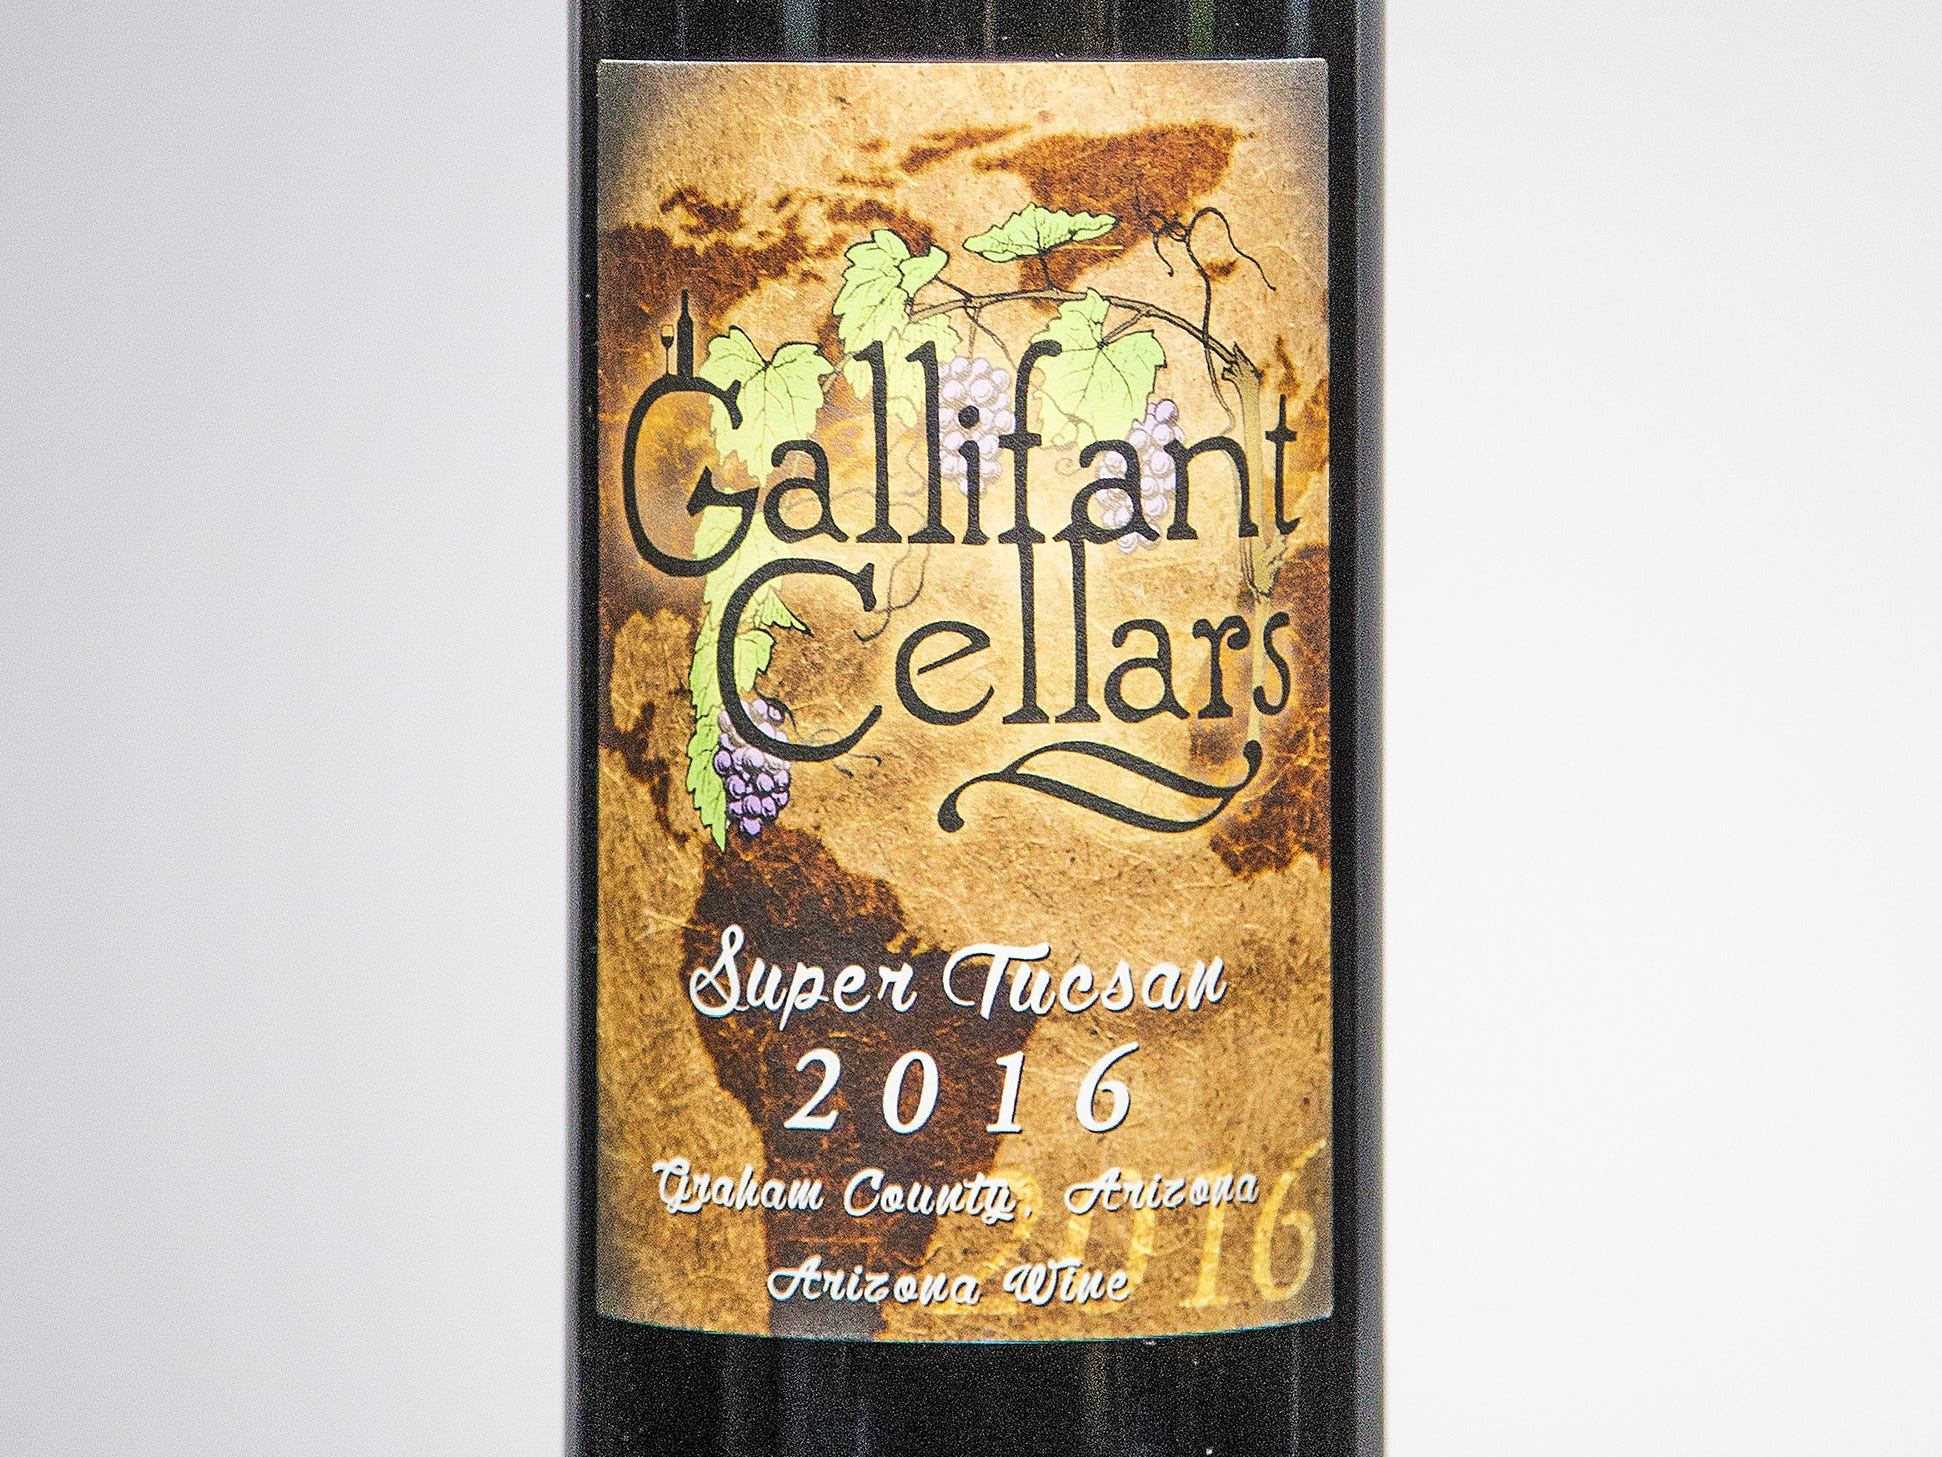 Best Super Tuscan: Gallifant Cellars Super Tuscan 2016.